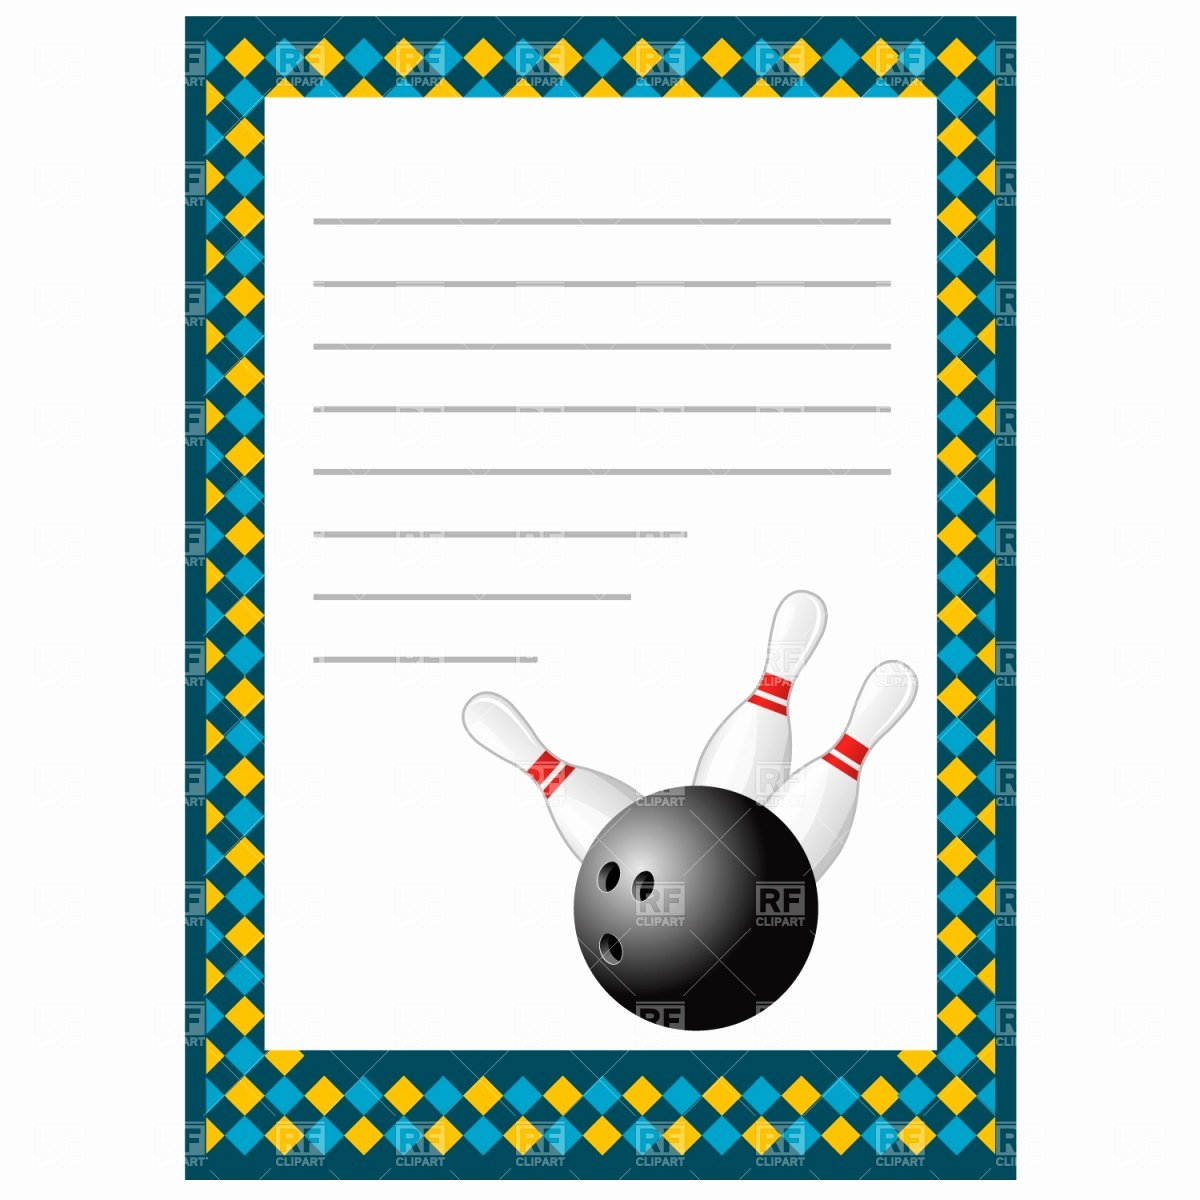 Bowling Invitation Template Free Inspirational Cardit